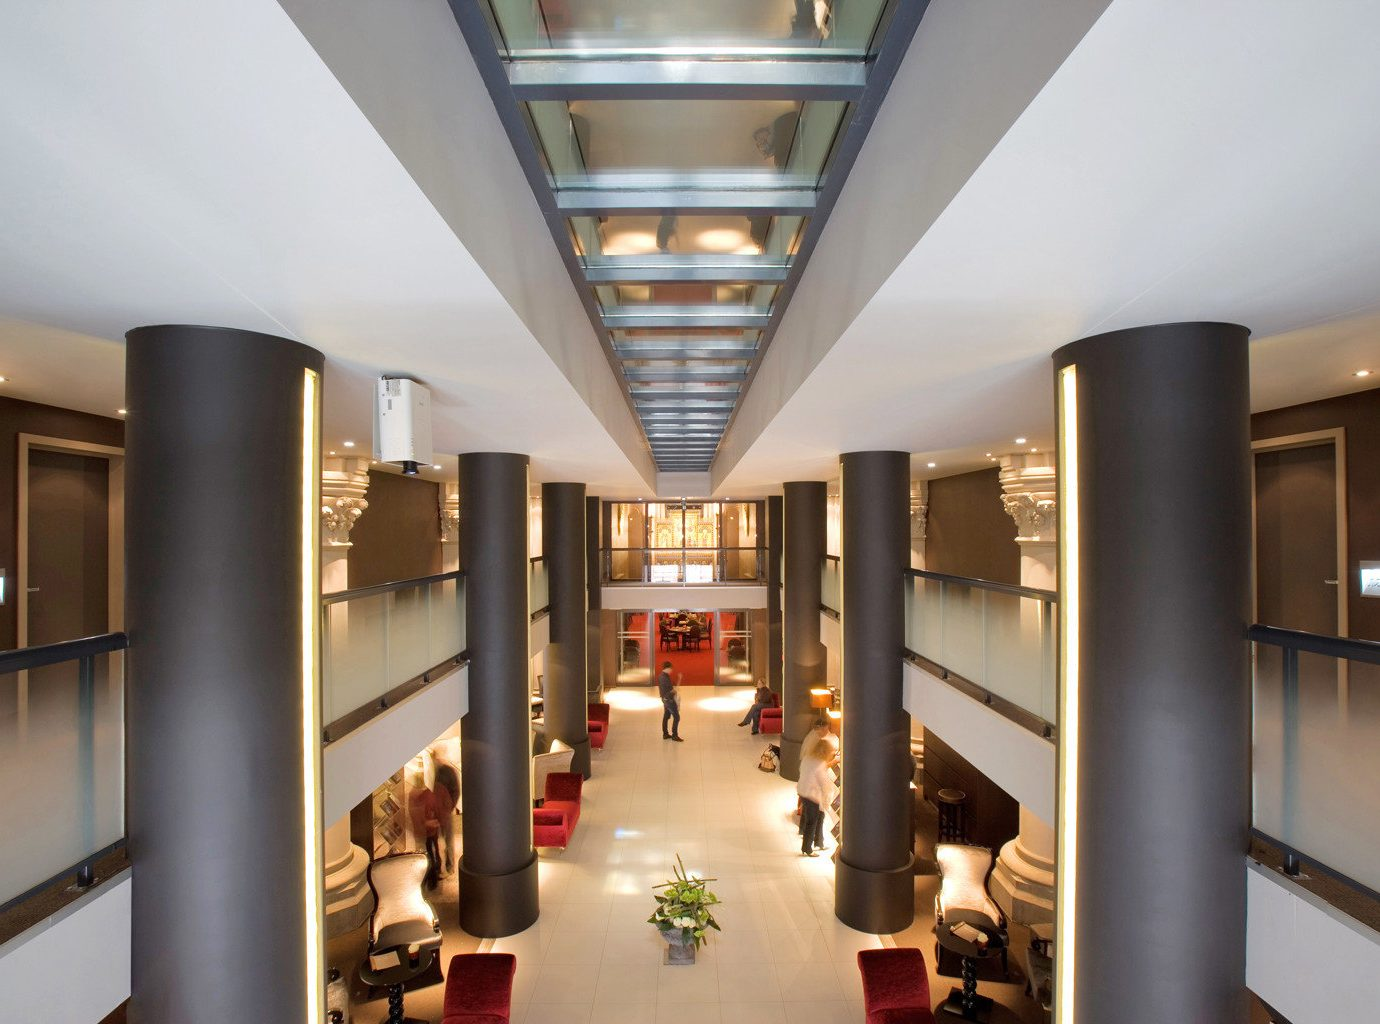 City Cultural Historic Lobby building Architecture shopping mall hall tourist attraction headquarters